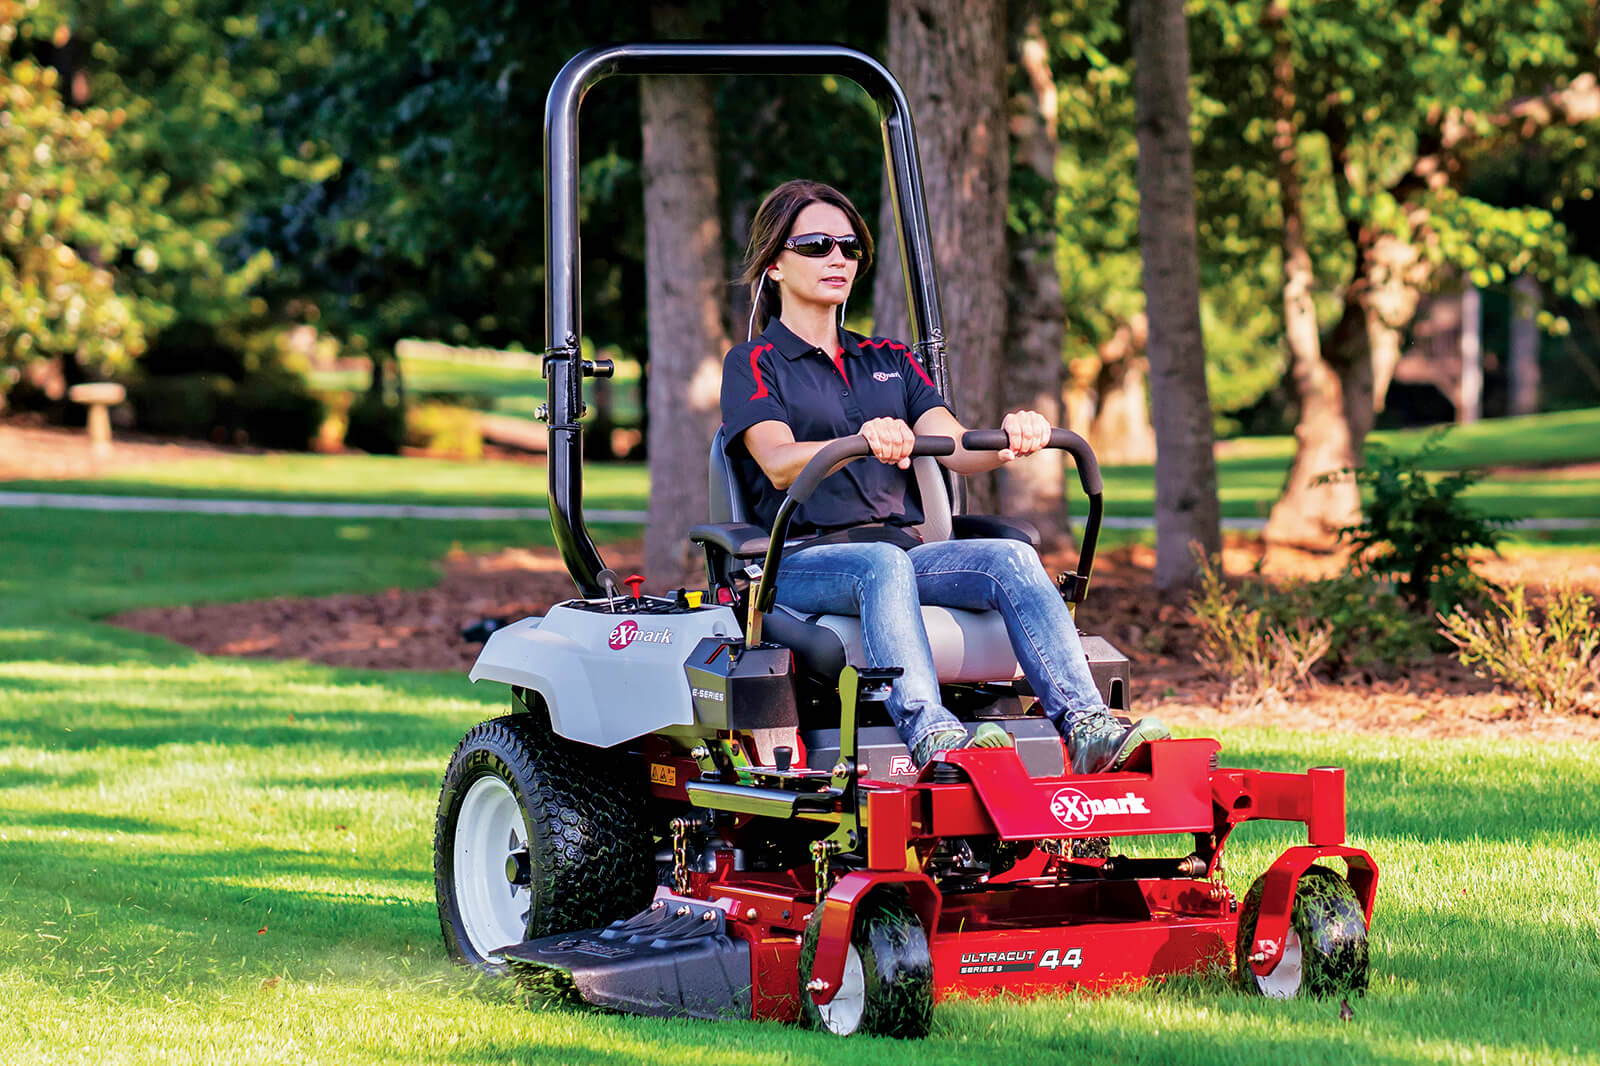 woman using a riding mower to cut grass